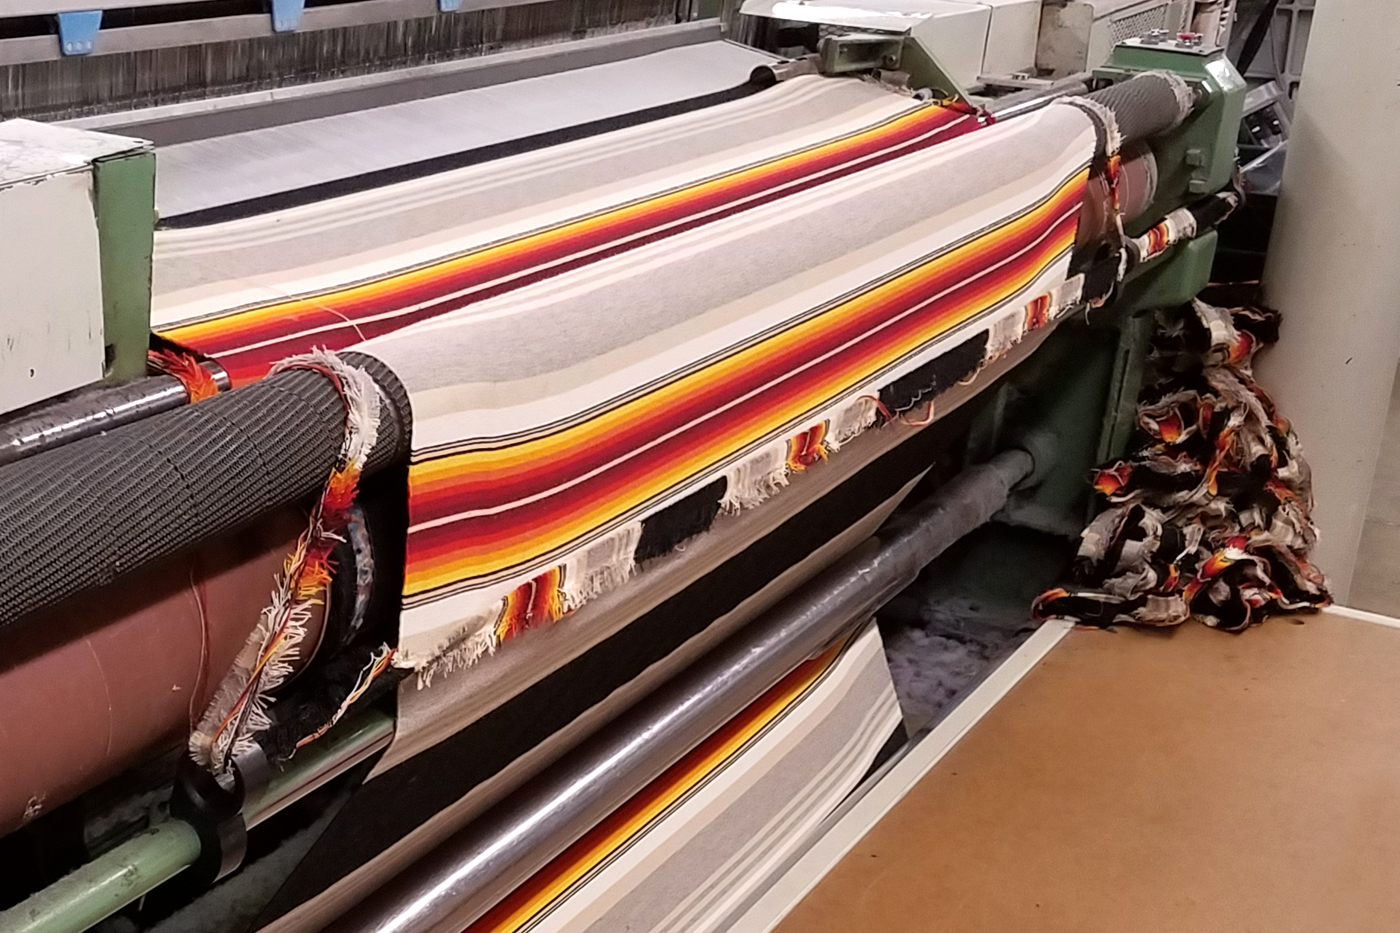 Selvage (loom waste) is trimmed off the sides of Pendleton blankets woven in Pendleton, Oregon.